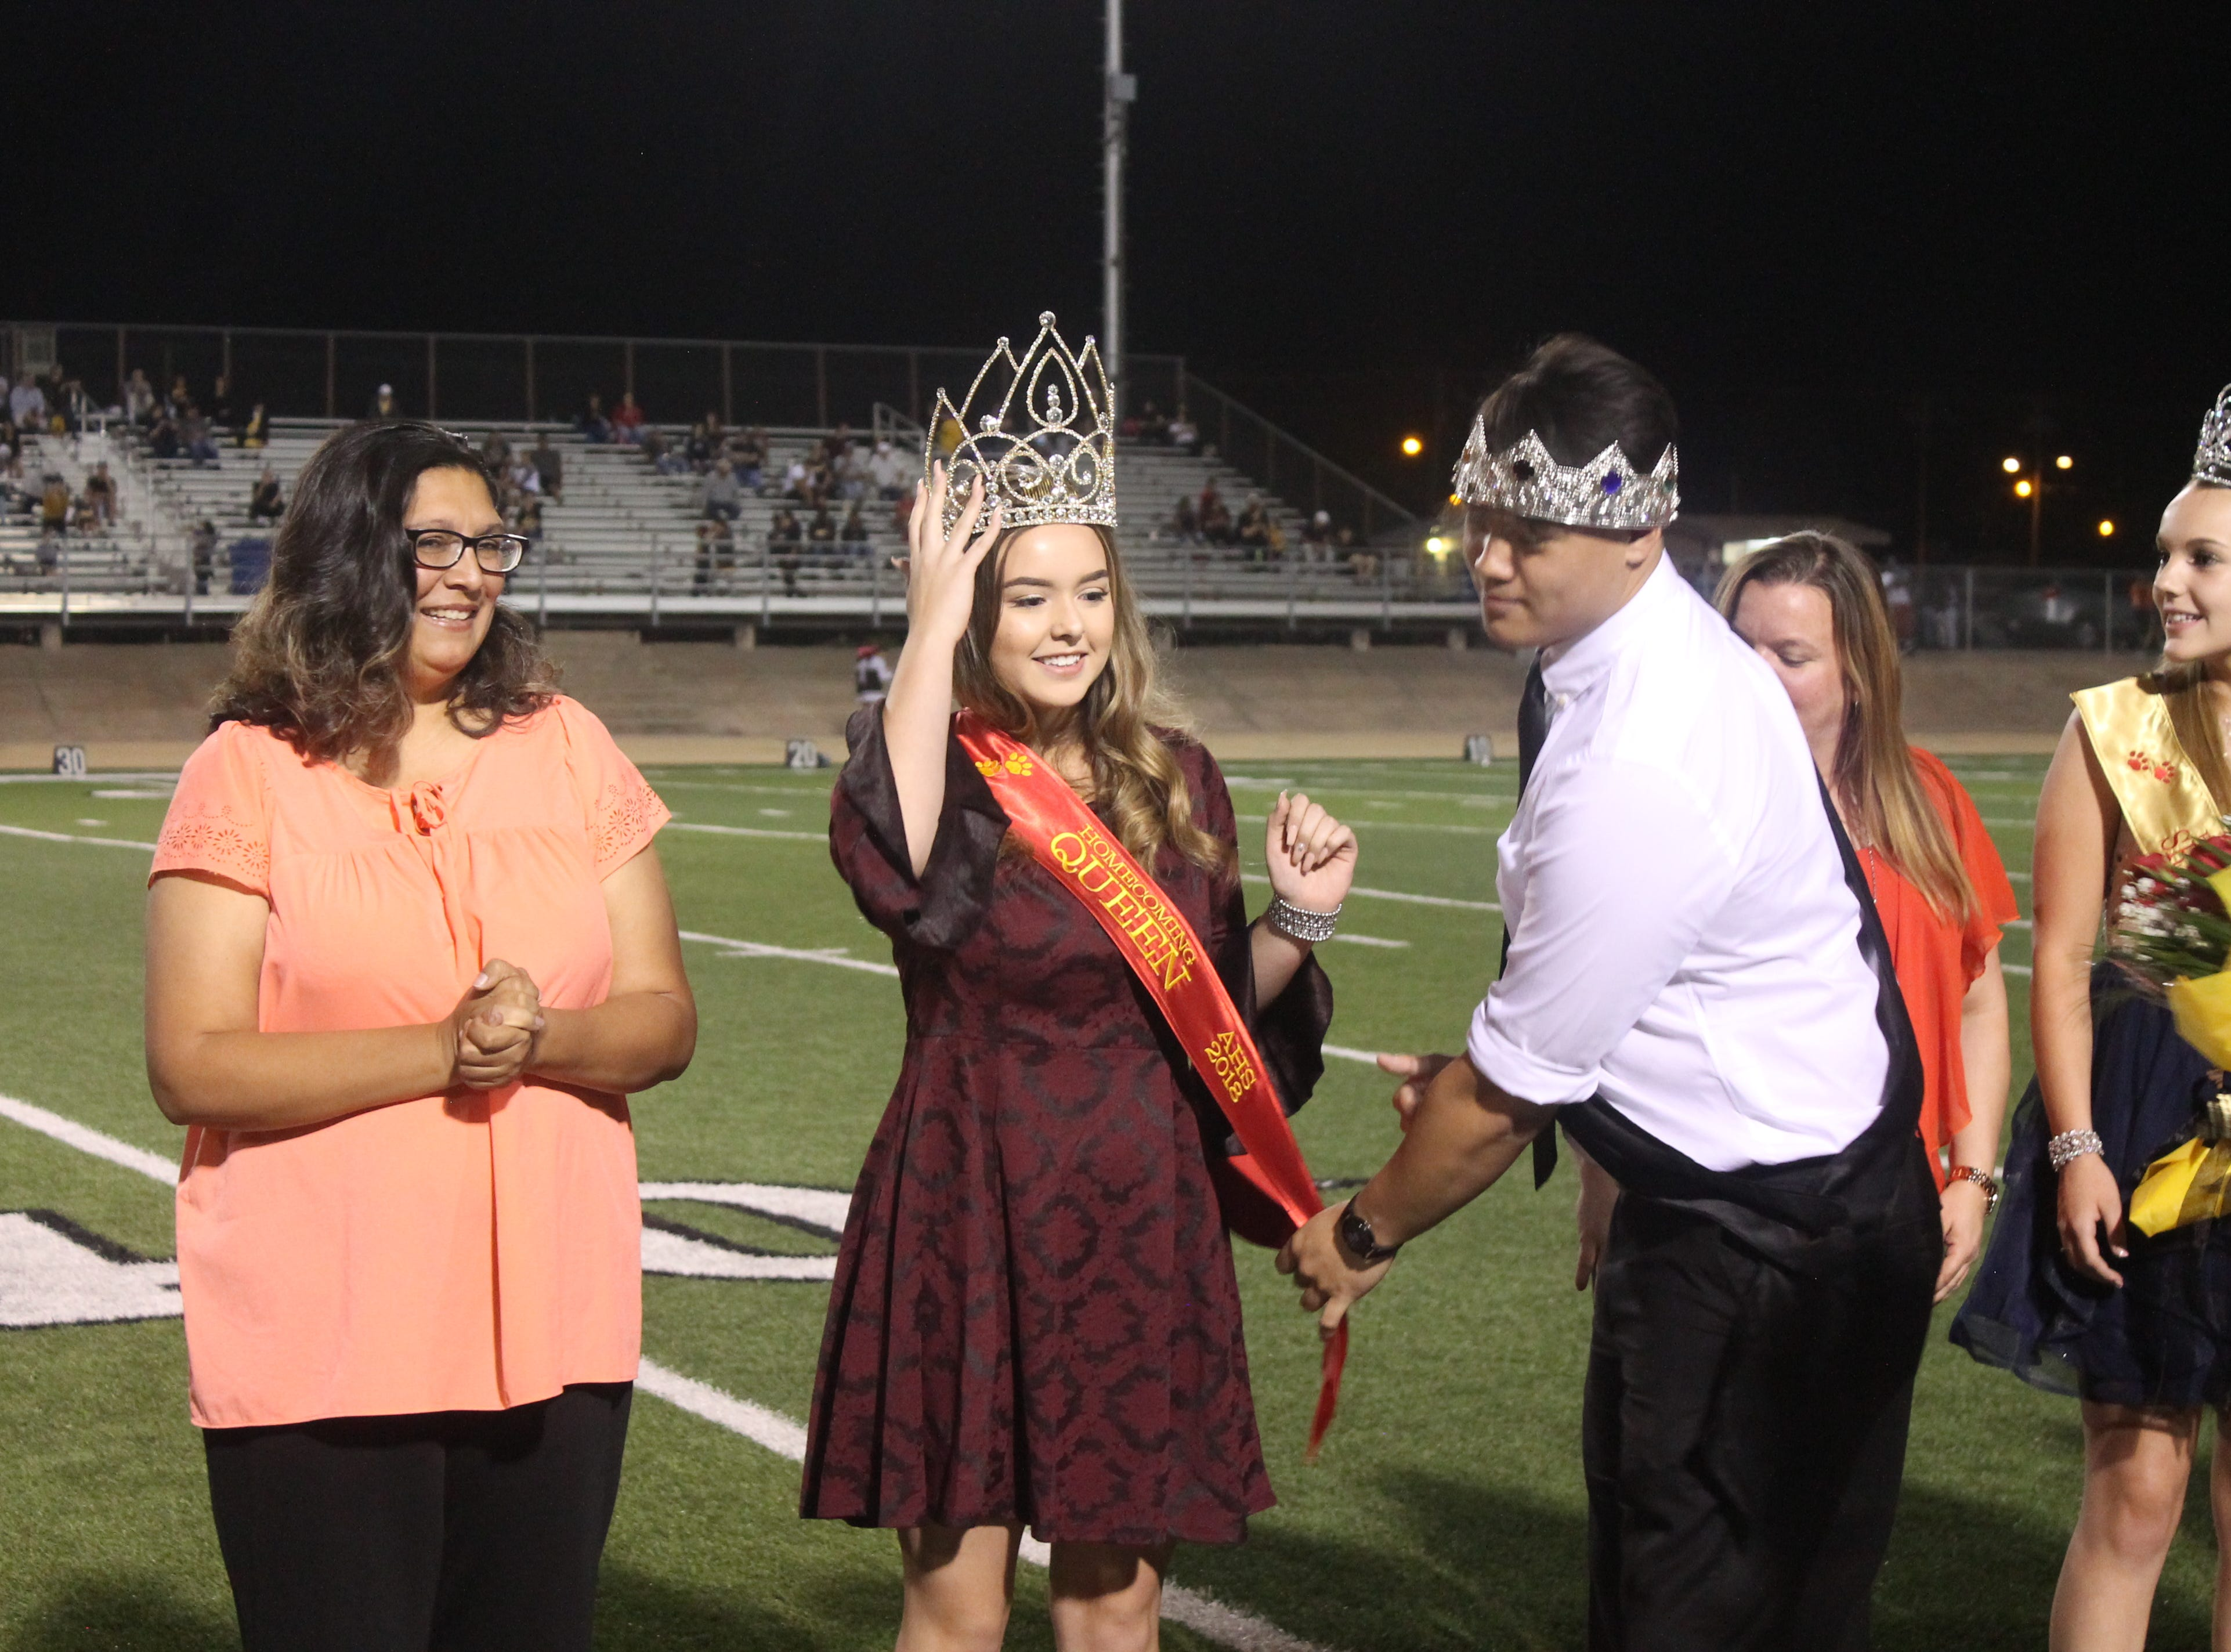 Alamogordo High School's 2018 Homecoming Queen Deja-Rae Kosier receives her sash from 2017 king Casey Myers.